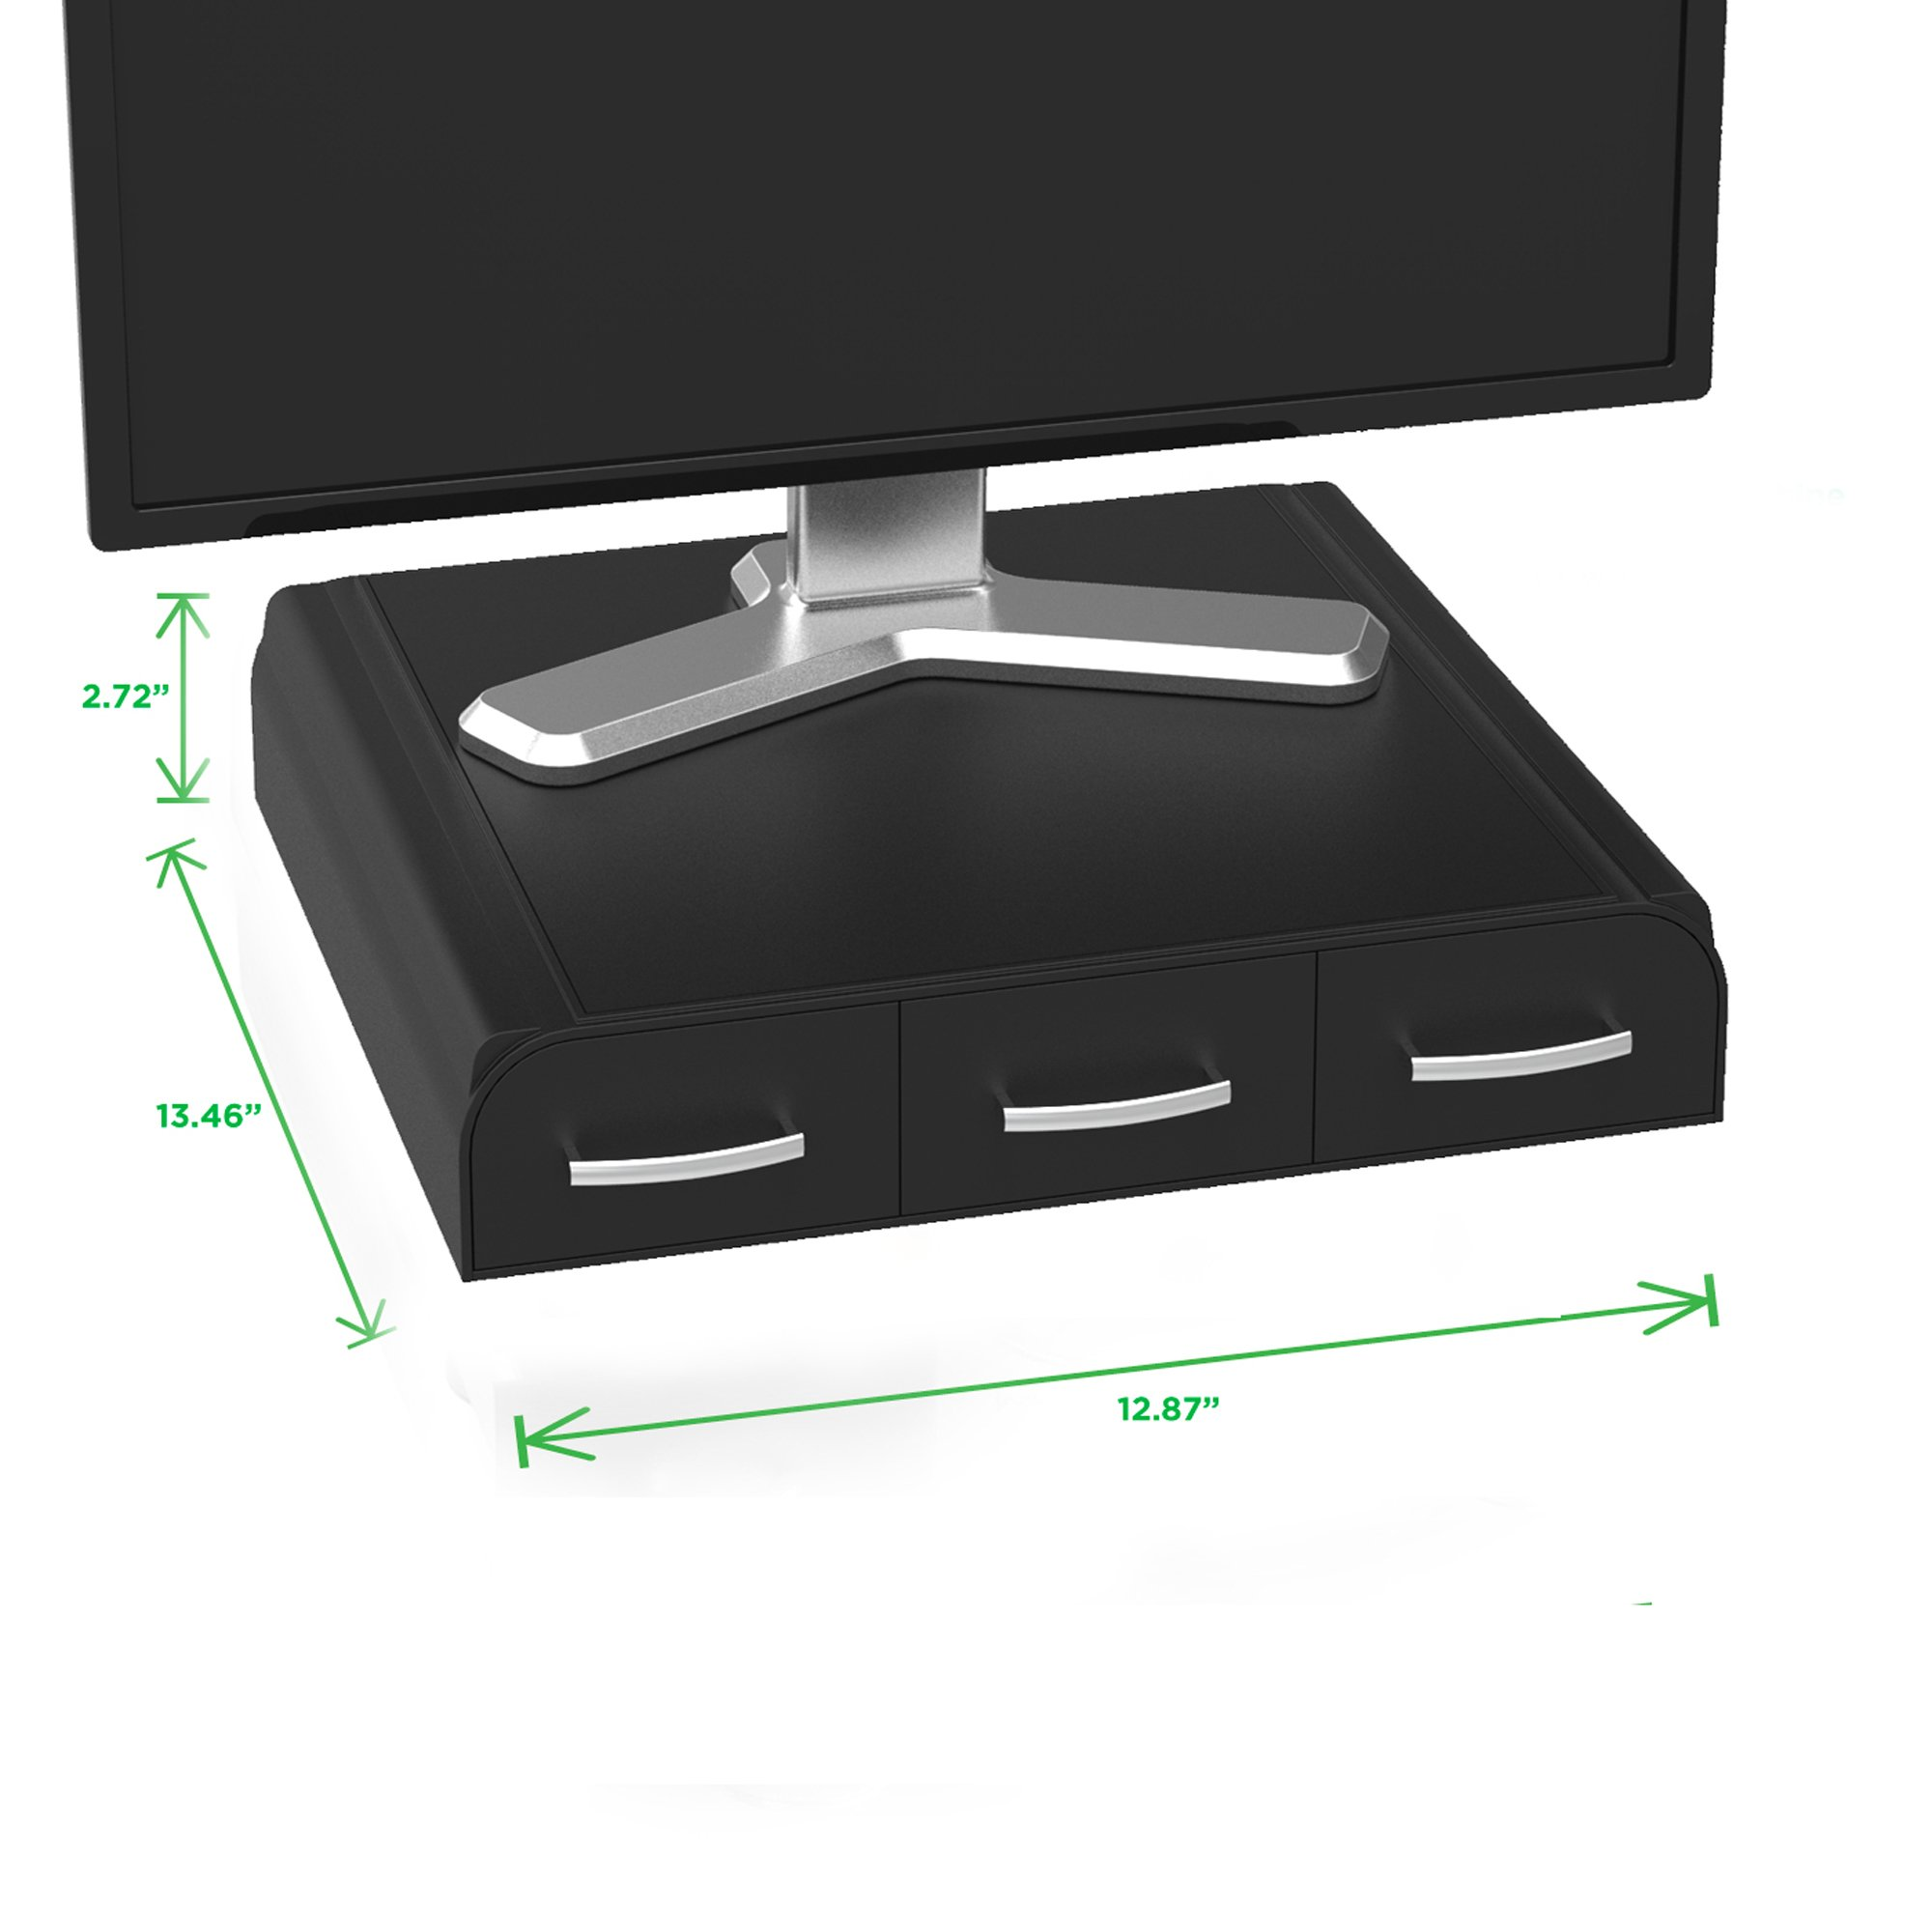 Mind Reader PC, Laptop, IMAC Monitor Stand and Desk Organizer, Black by Mind Reader (Image #7)